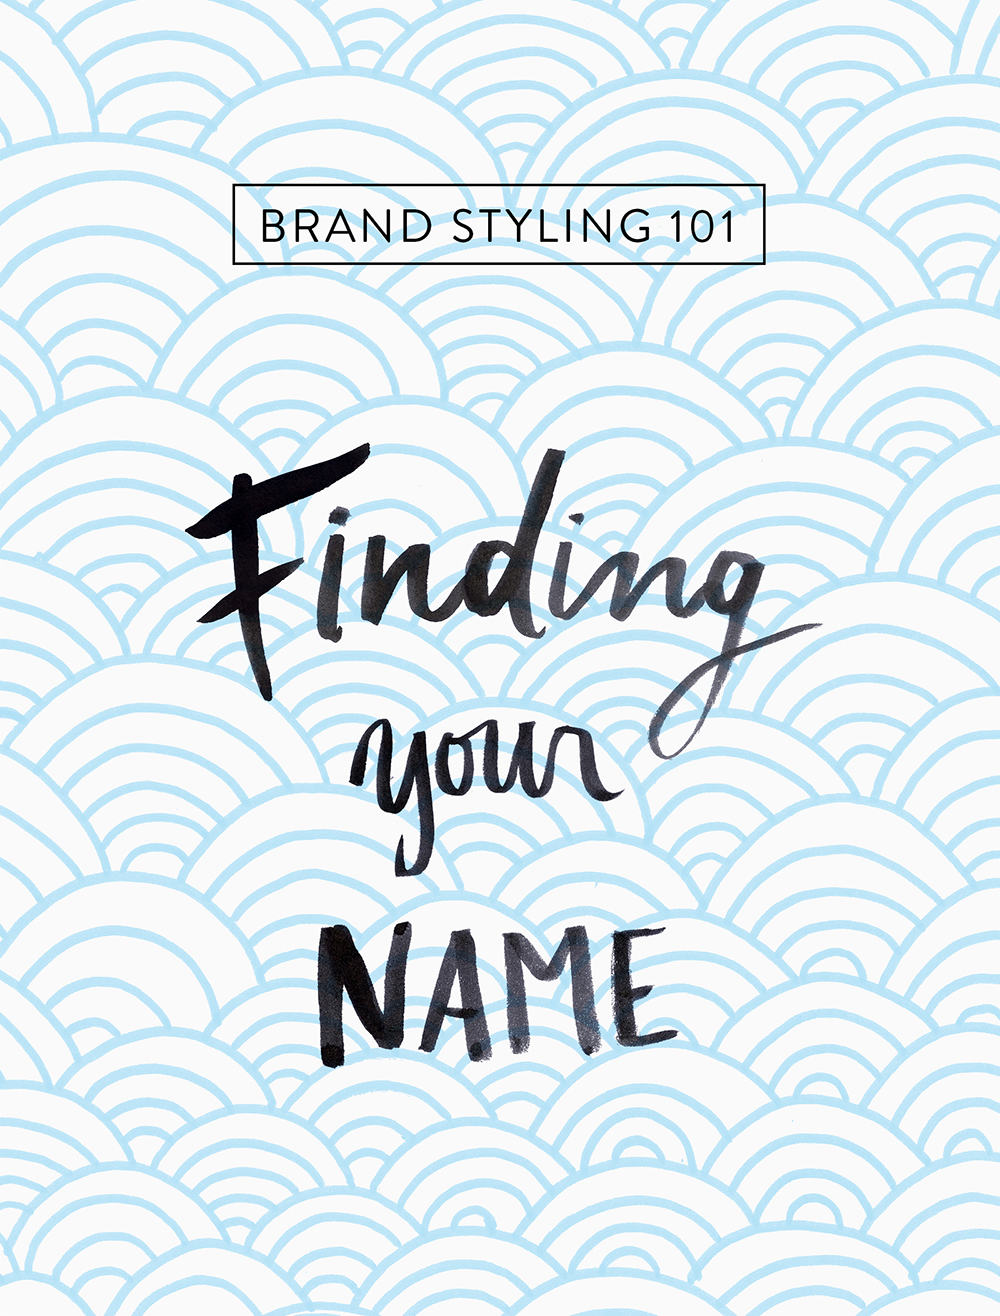 FEATURED-Brand-styling-101-namefinding